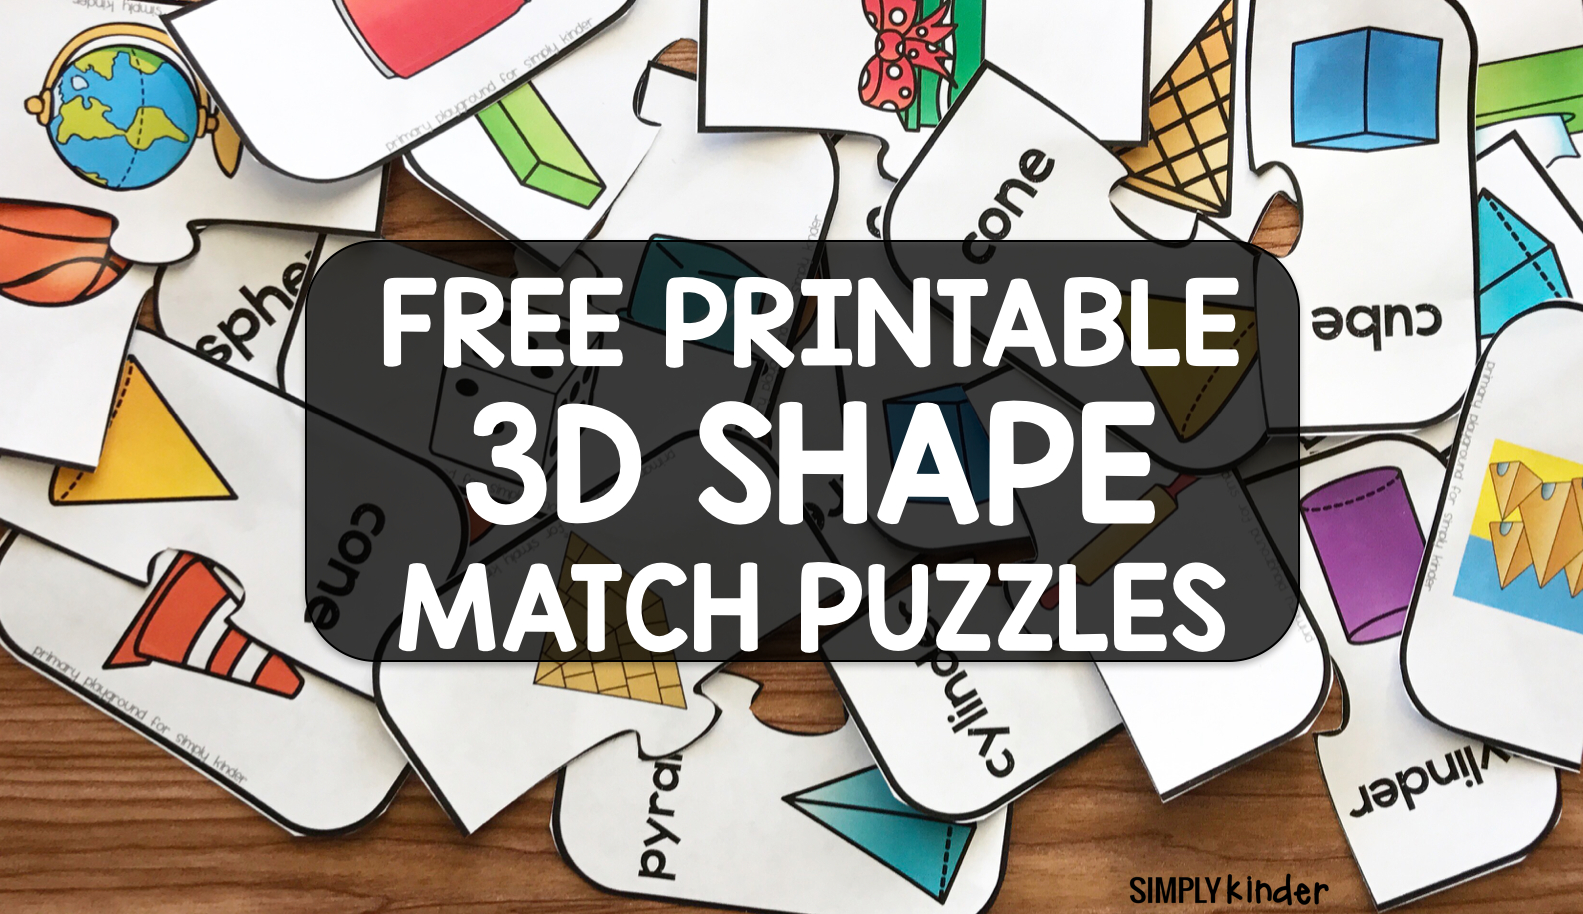 Free Printable 3D Shape Puzzles - Simply Kinder - Printable Shape Puzzles